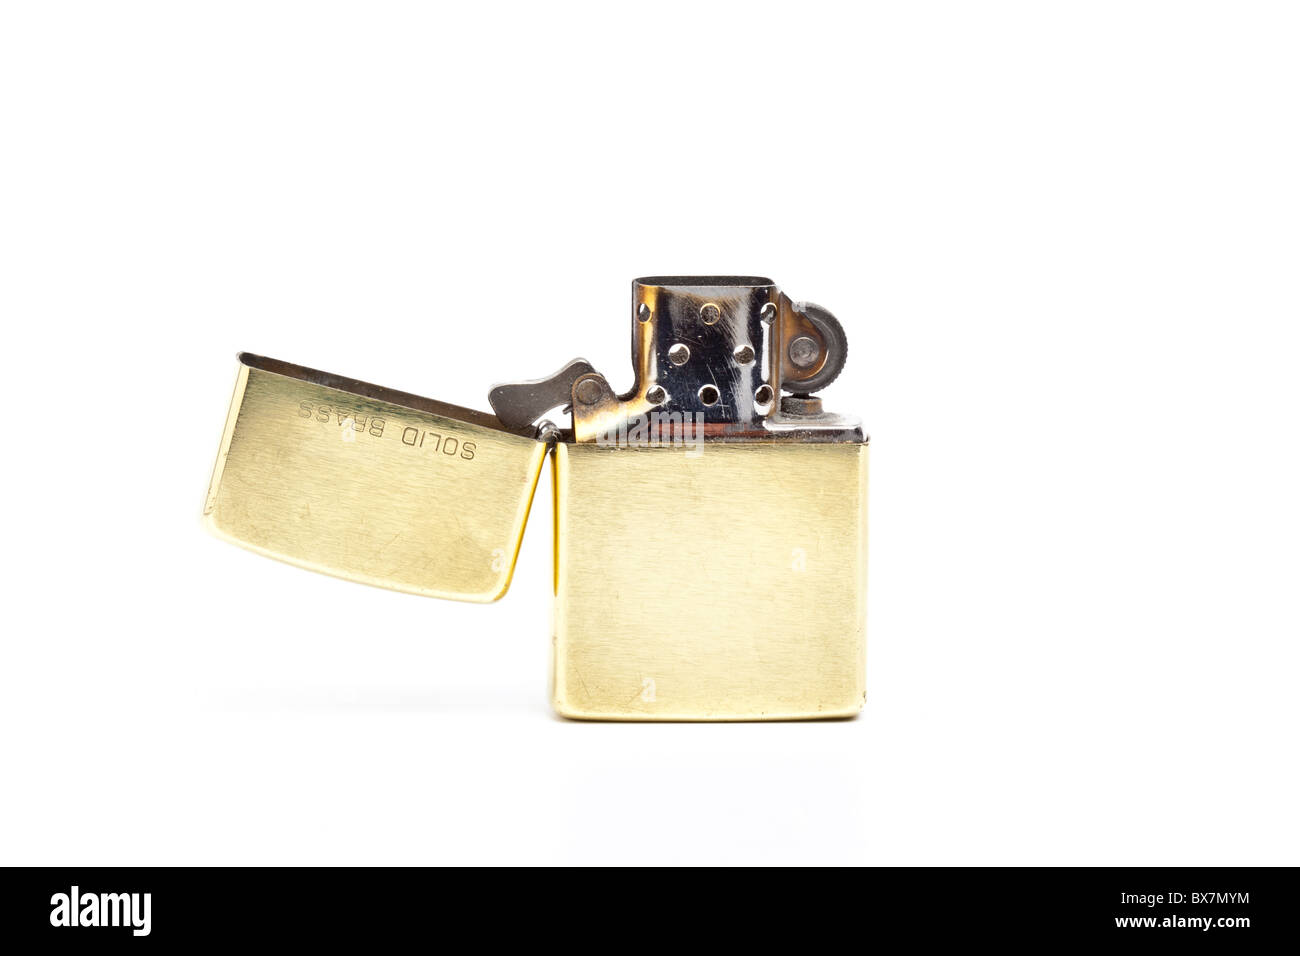 Brass Zippo lighter with open top - Stock Image